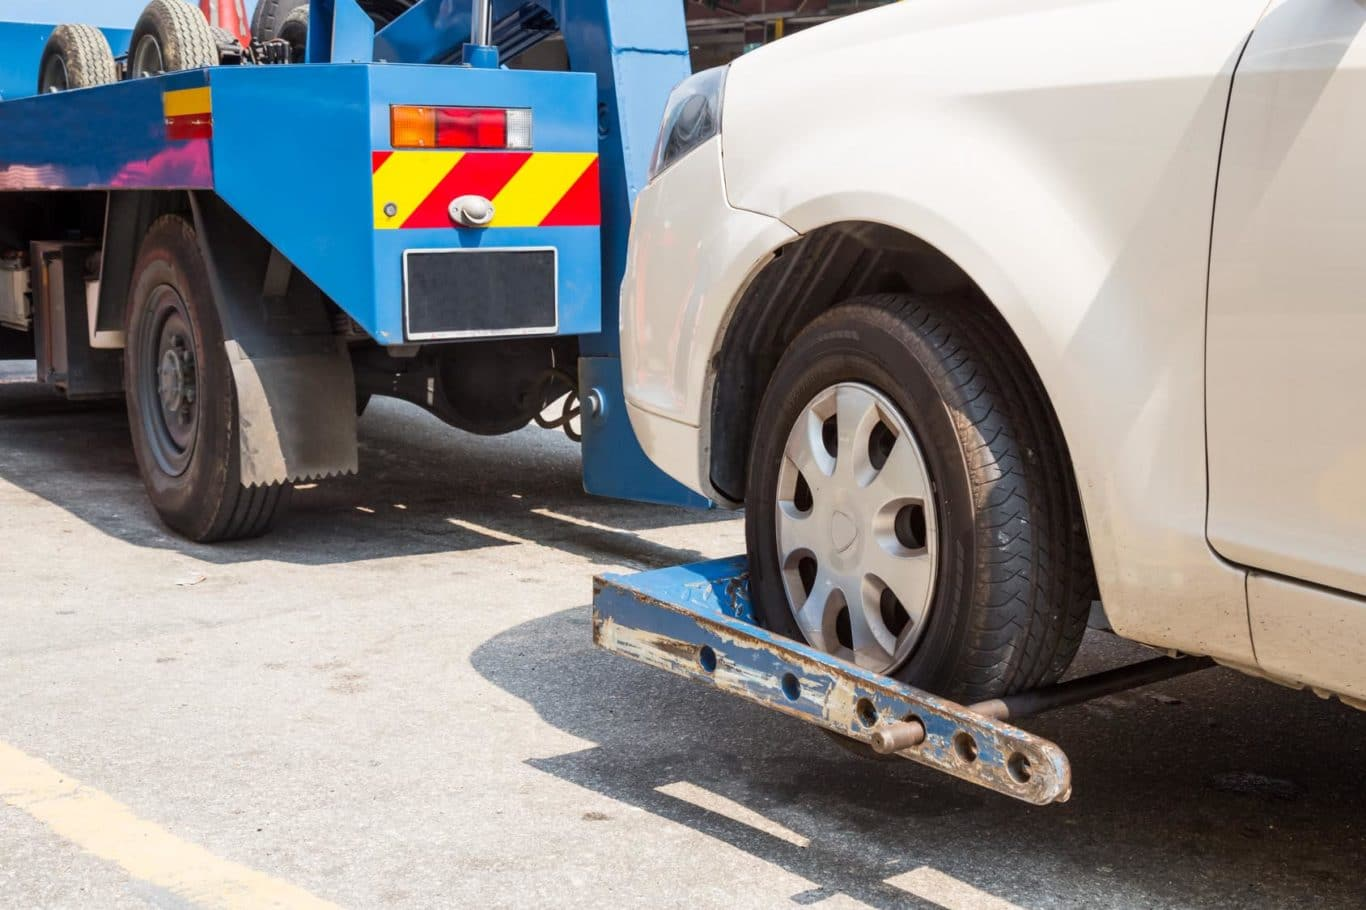 Dublin 5 (D5) expert Towing services